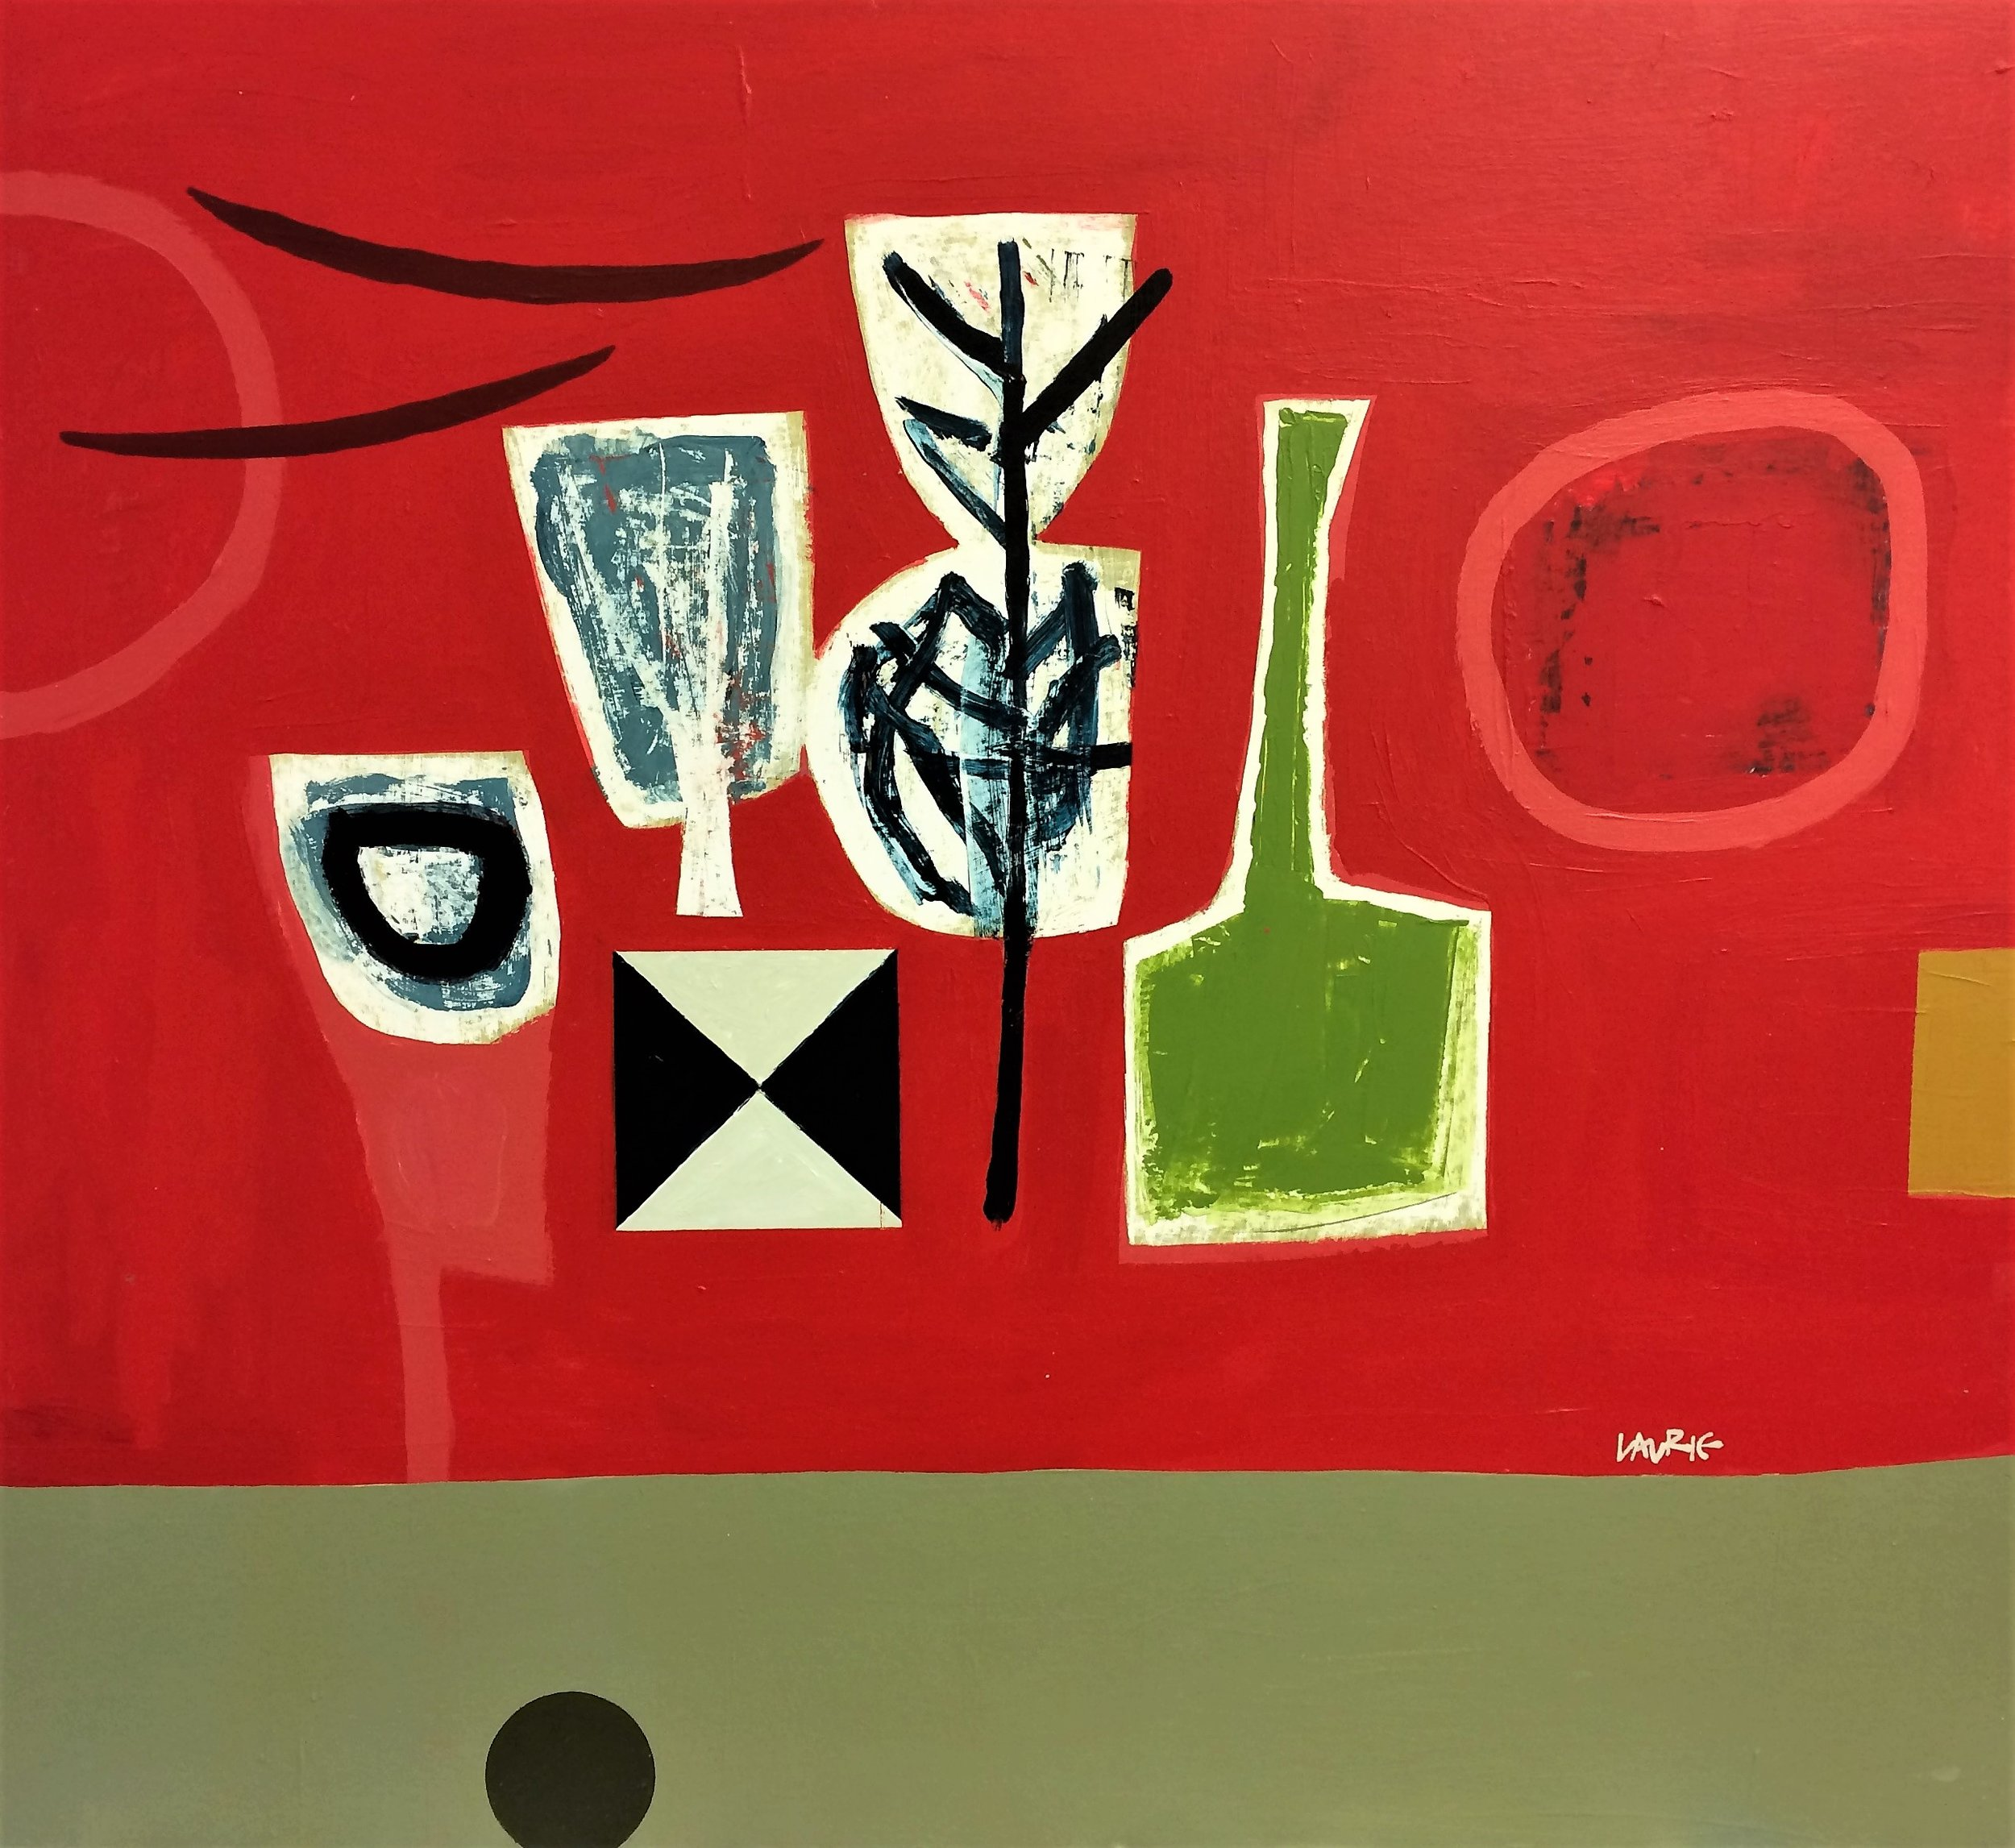 Artist: Simon Laurie  Title: Arrangement on Red  Size: 81 x 91 cm  Medium: Acrylic on board  Price: £4800   Buy Now